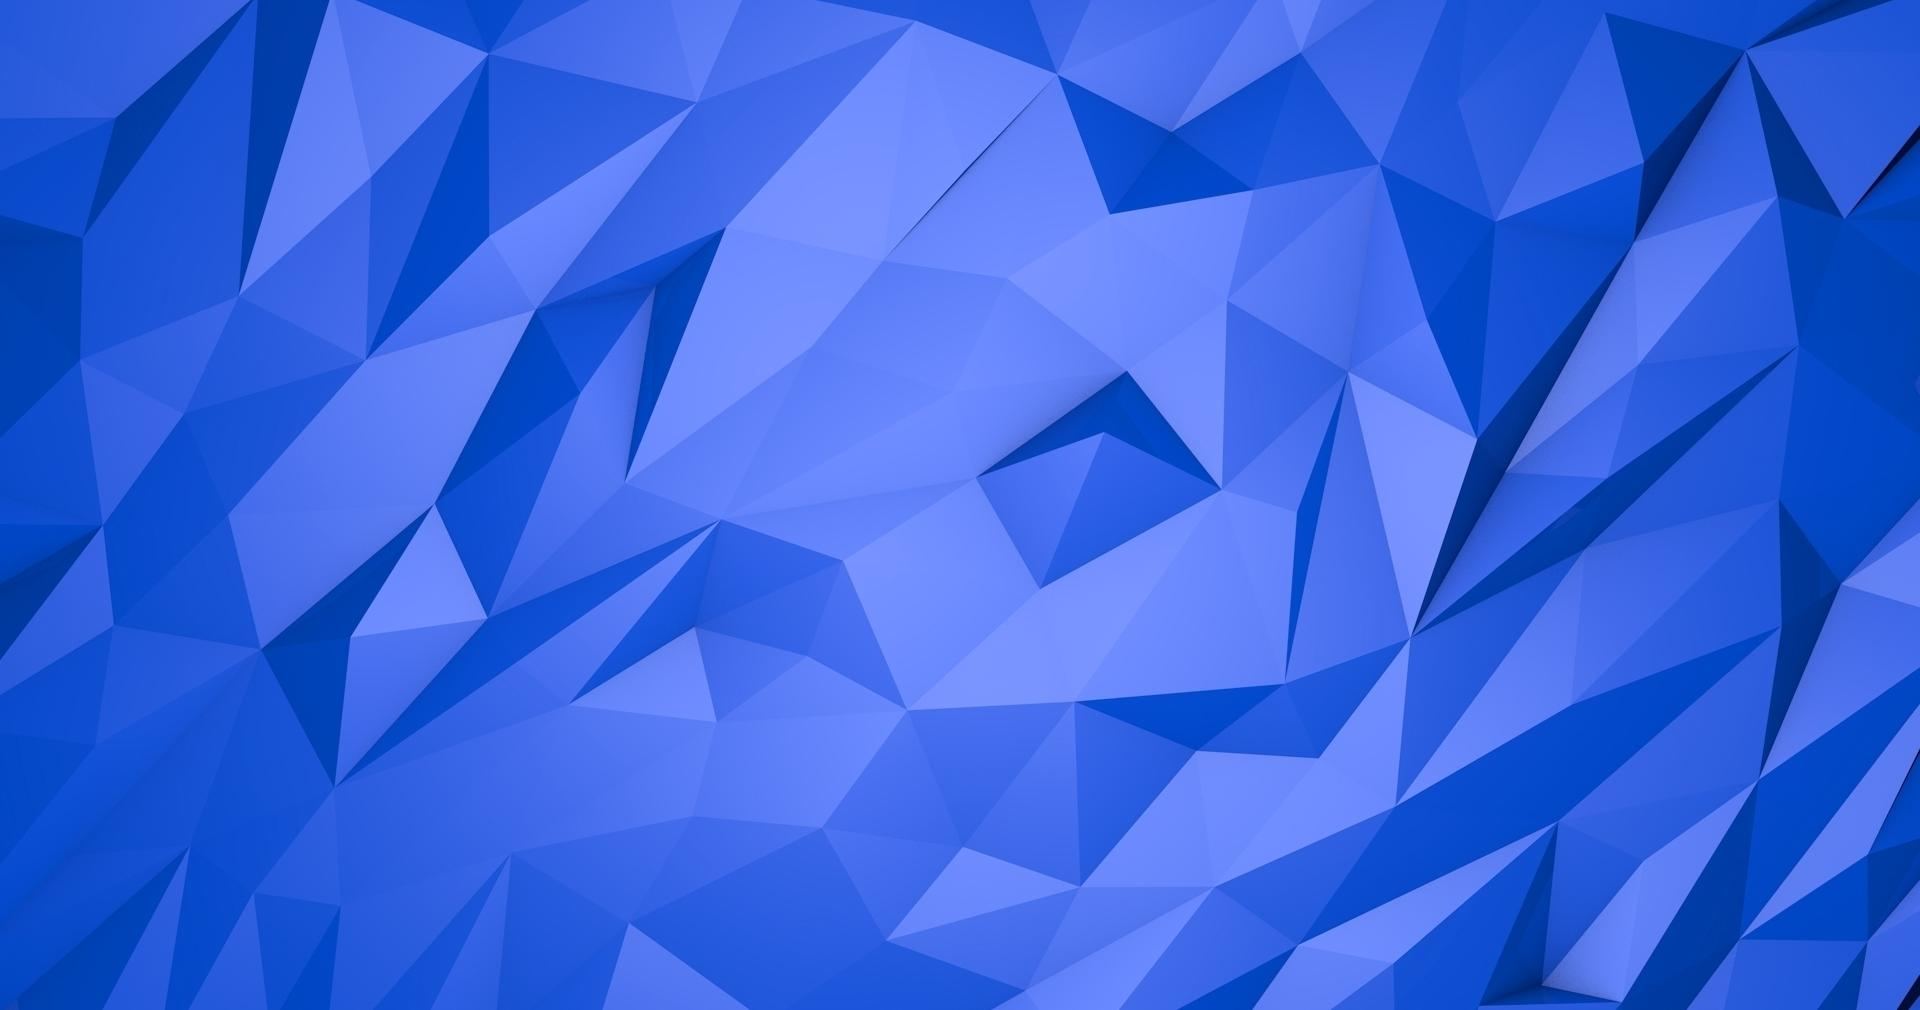 Blue pyramids wallpapers HD quality